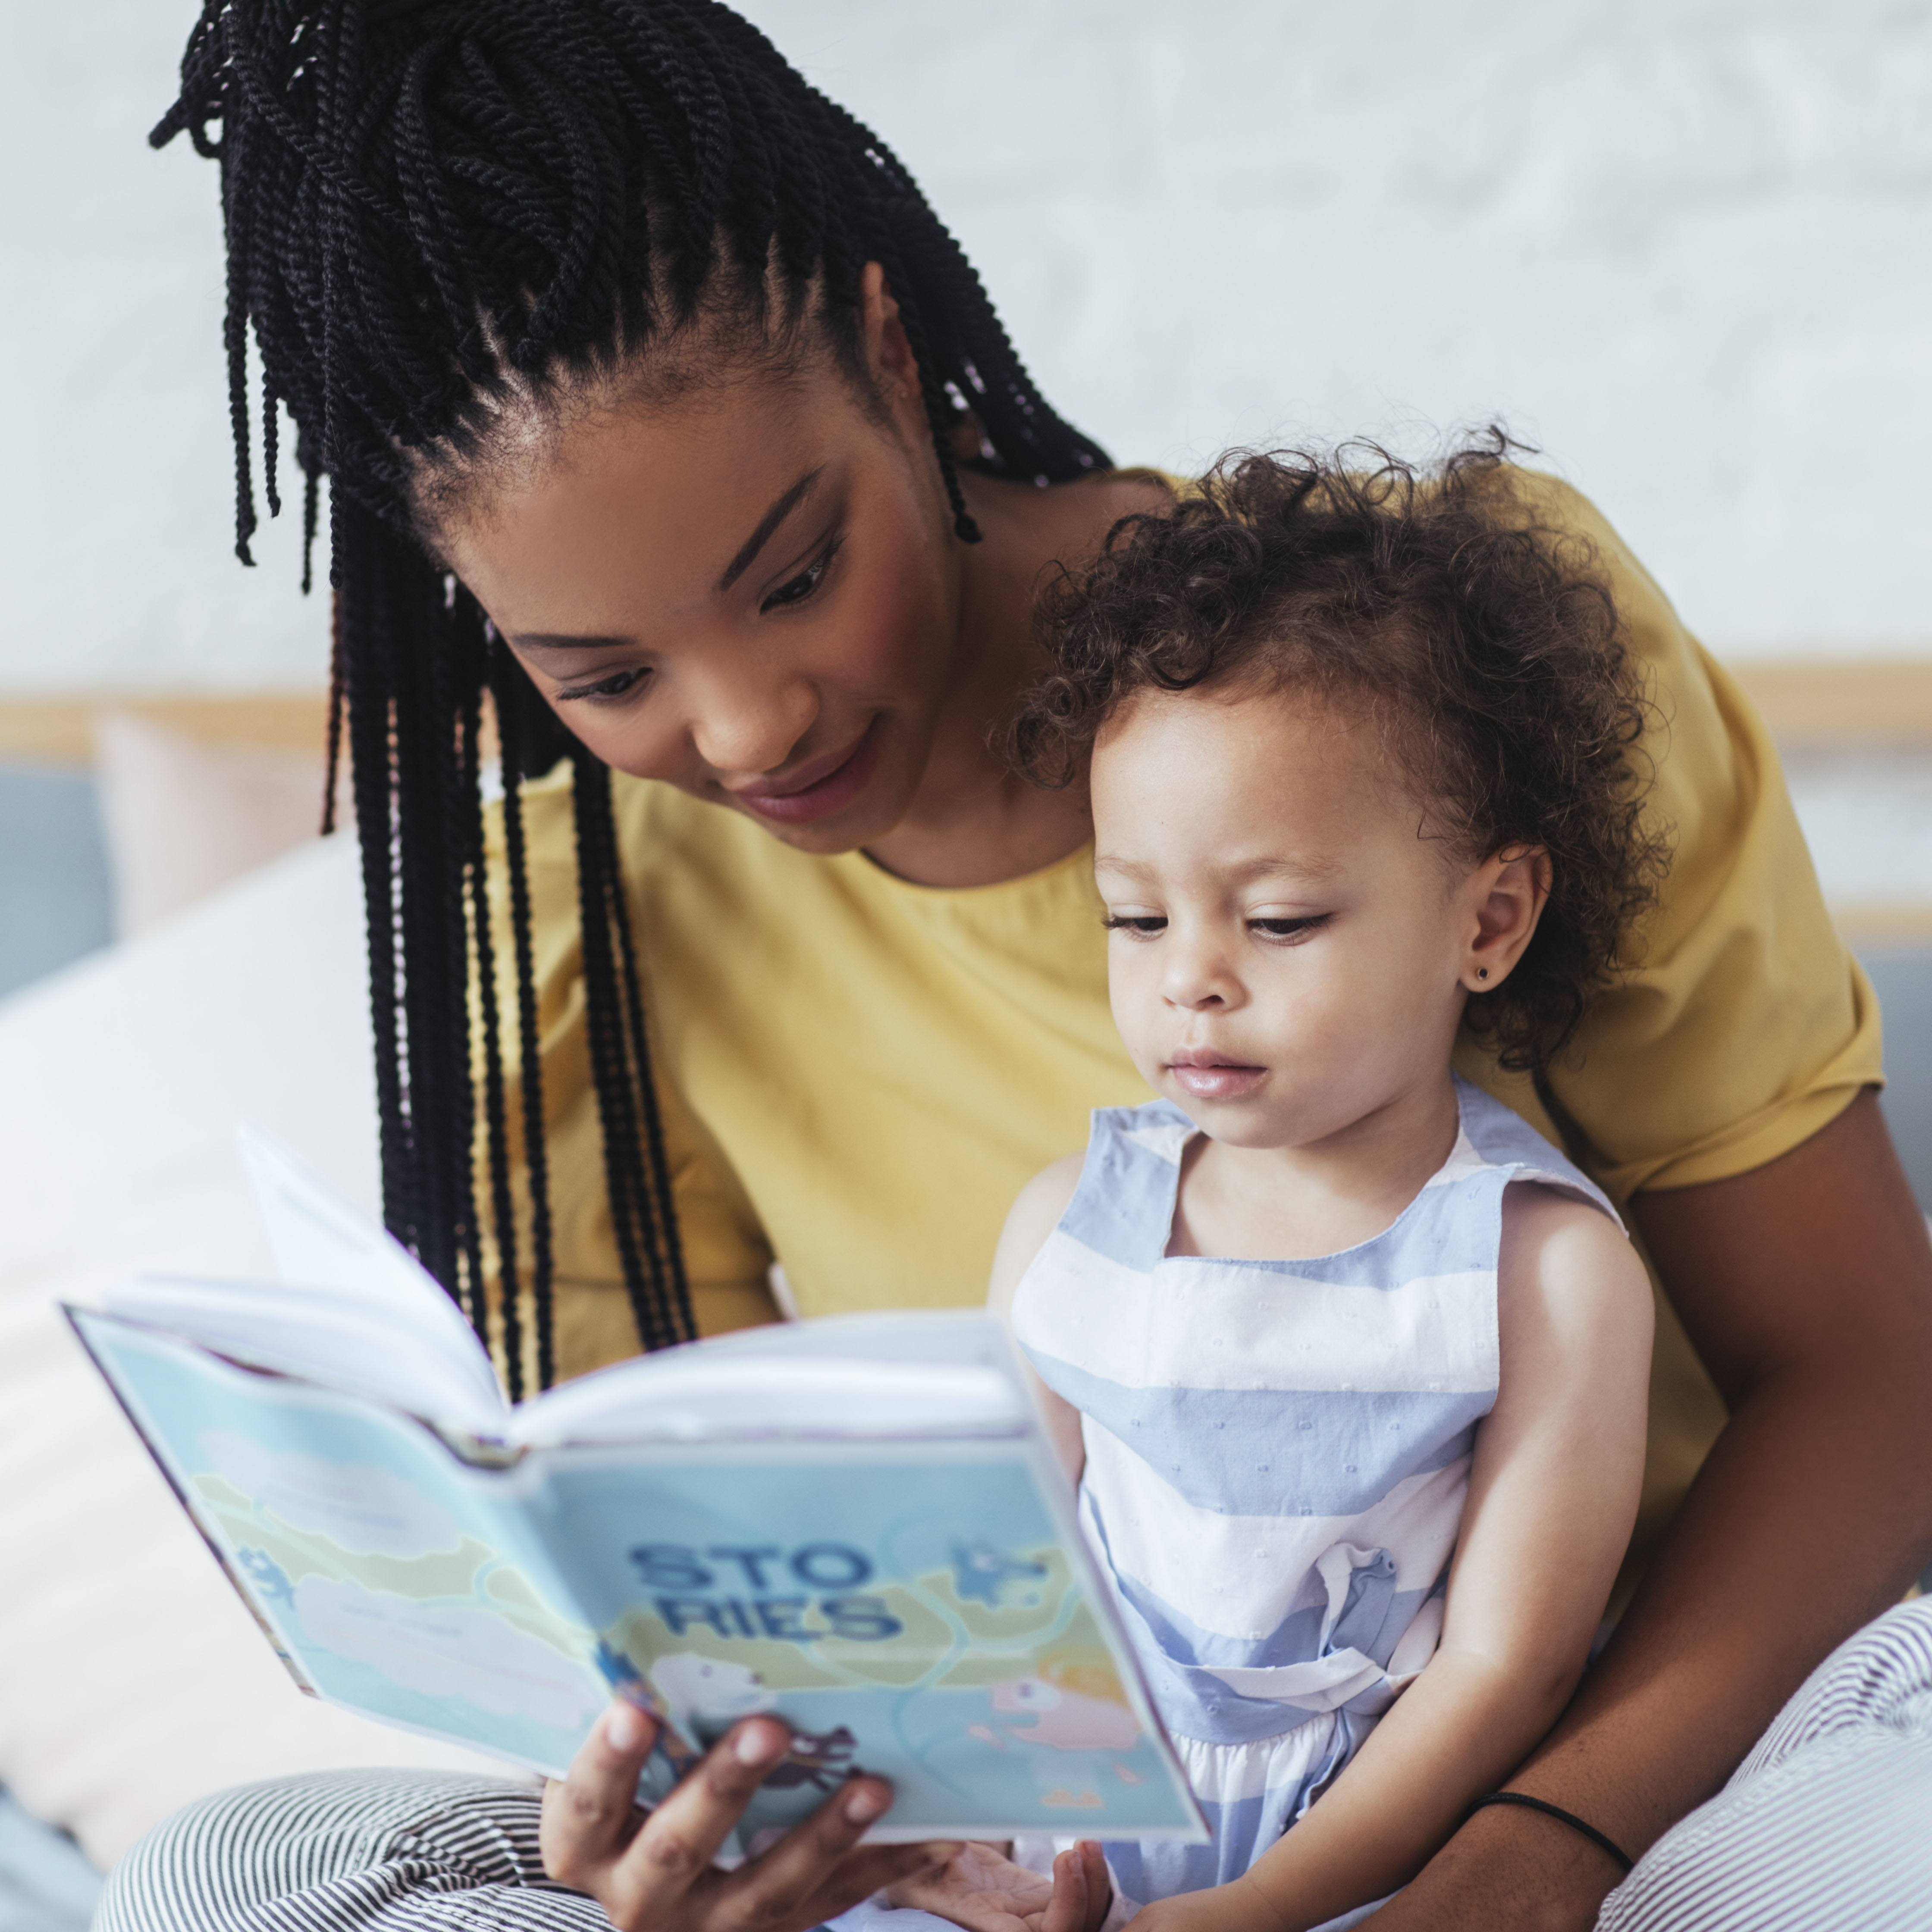 a young mother and her toddler daughter sitting together on a bed, reading a book